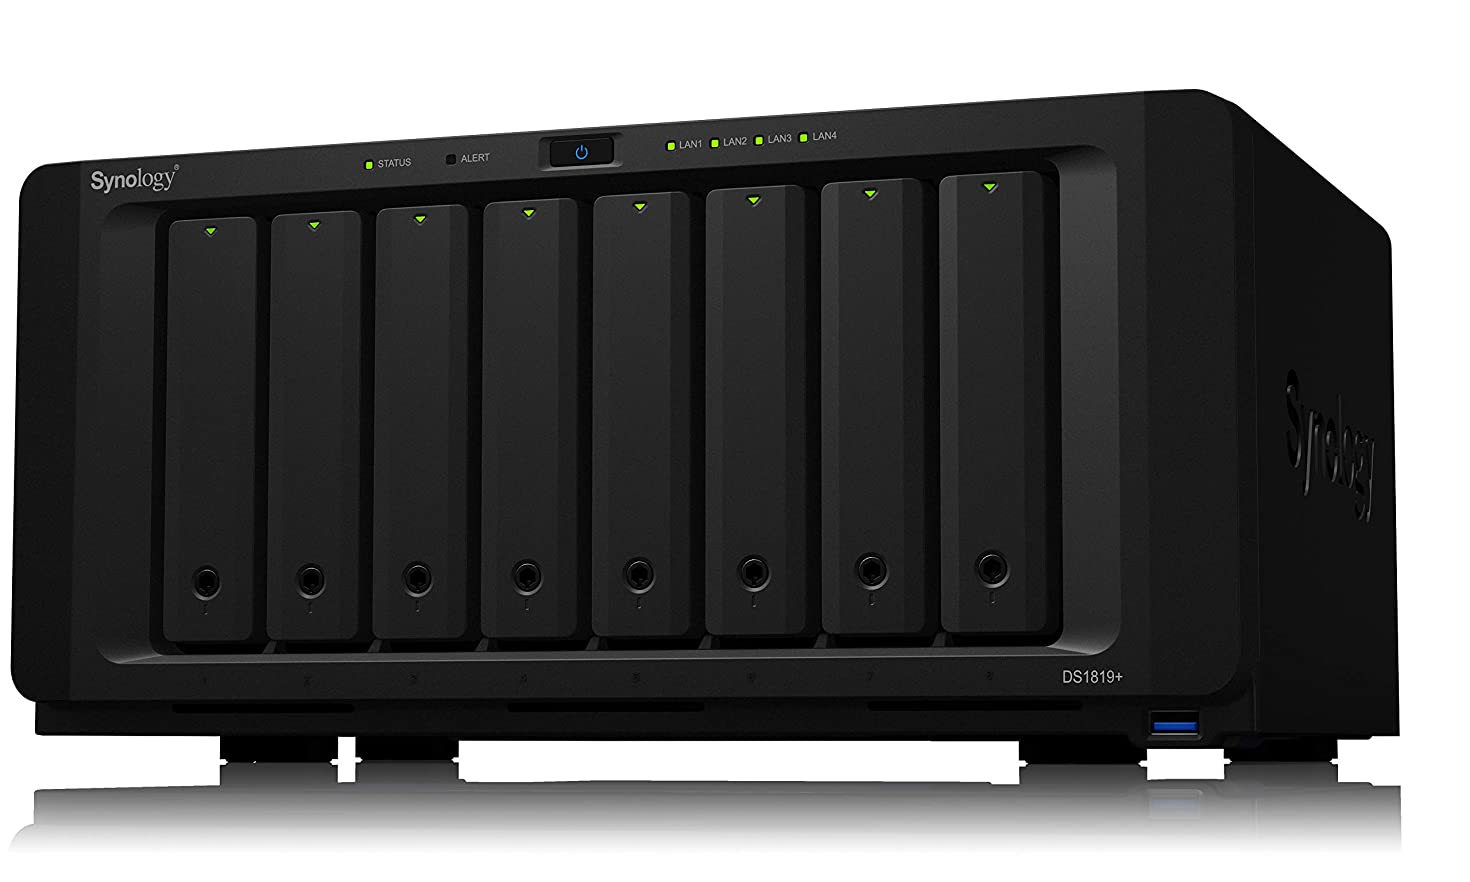 Synology 8 Bay NAS Diskstation (Diskless) (DS1819+)